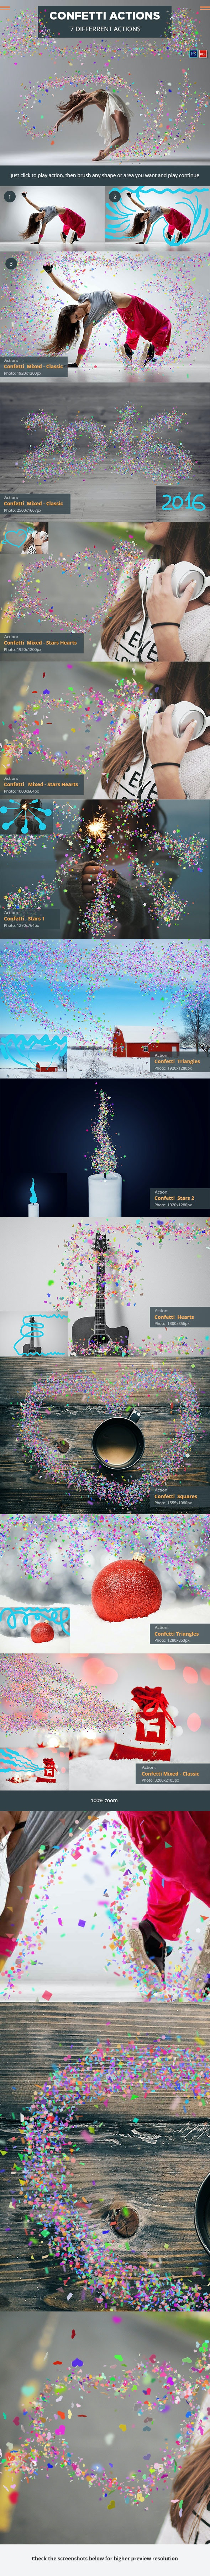 Confetti Photoshop Actions - Photo Effects Actions